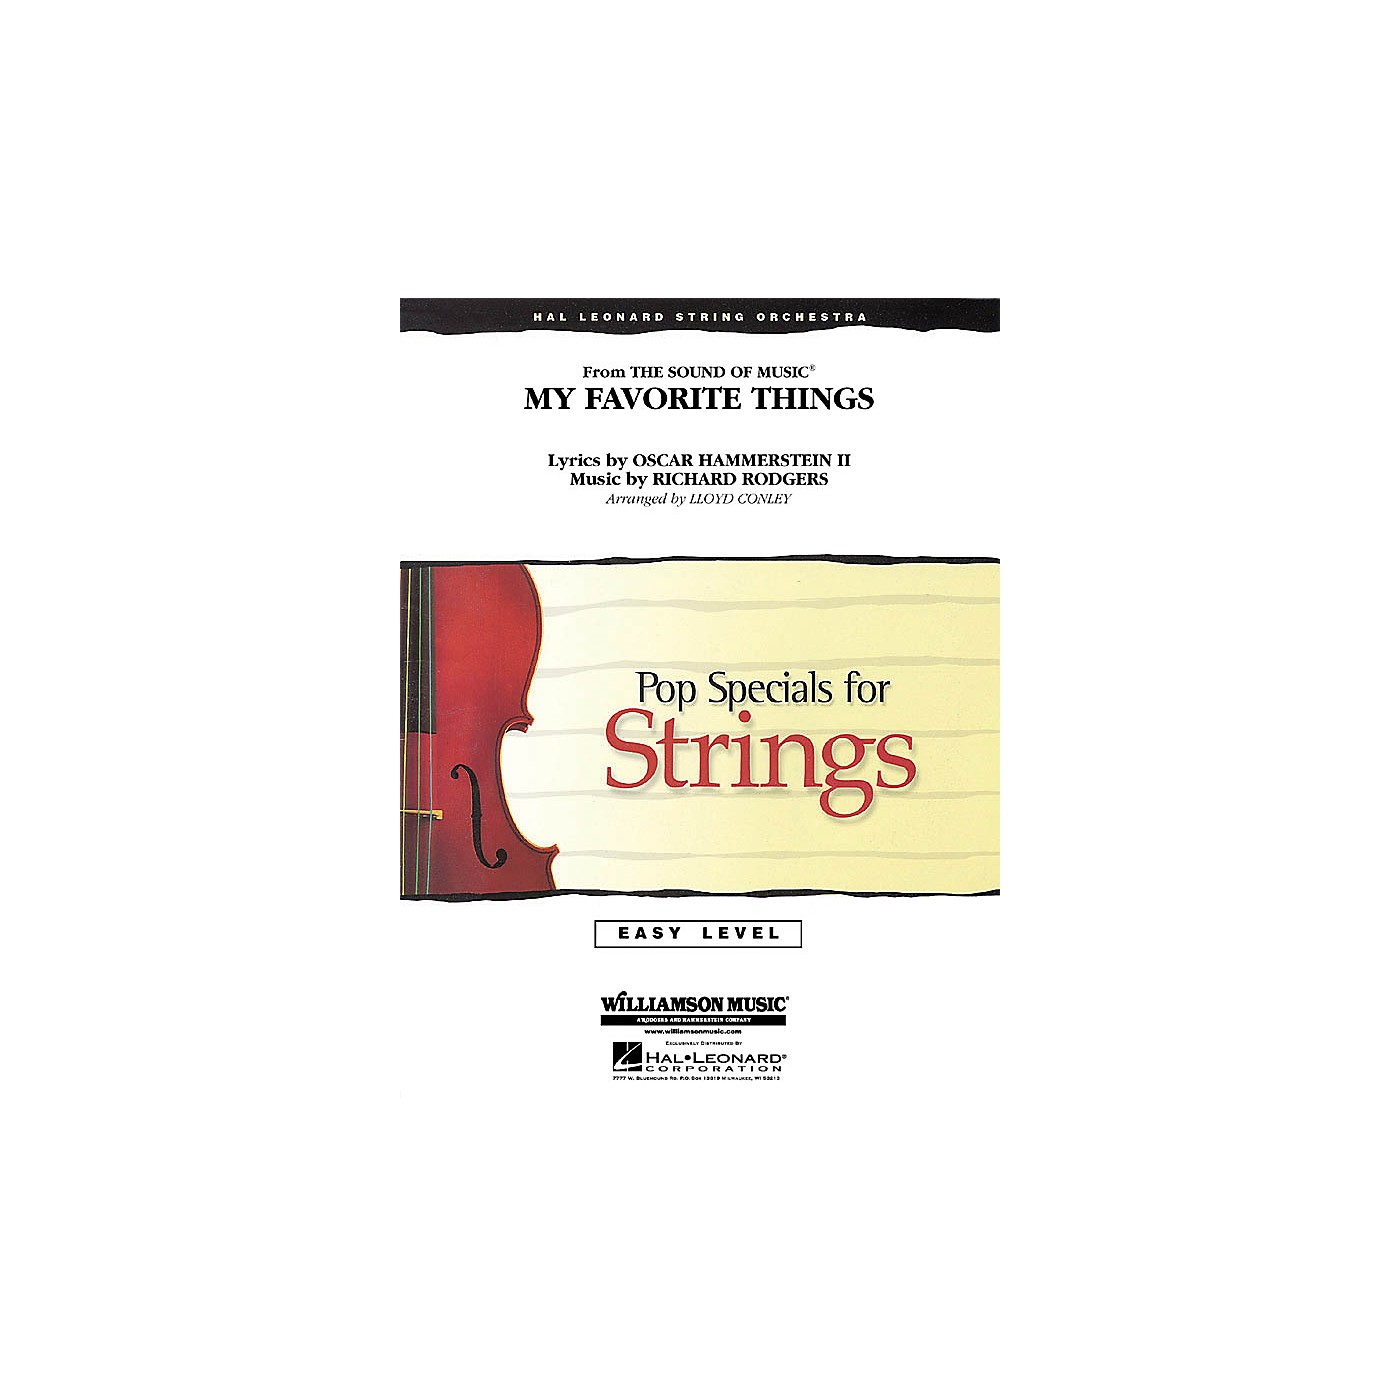 Hal Leonard My Favorite Things (from The Sound of Music) Easy Pop Specials For Strings Series by Lloyd Conley thumbnail